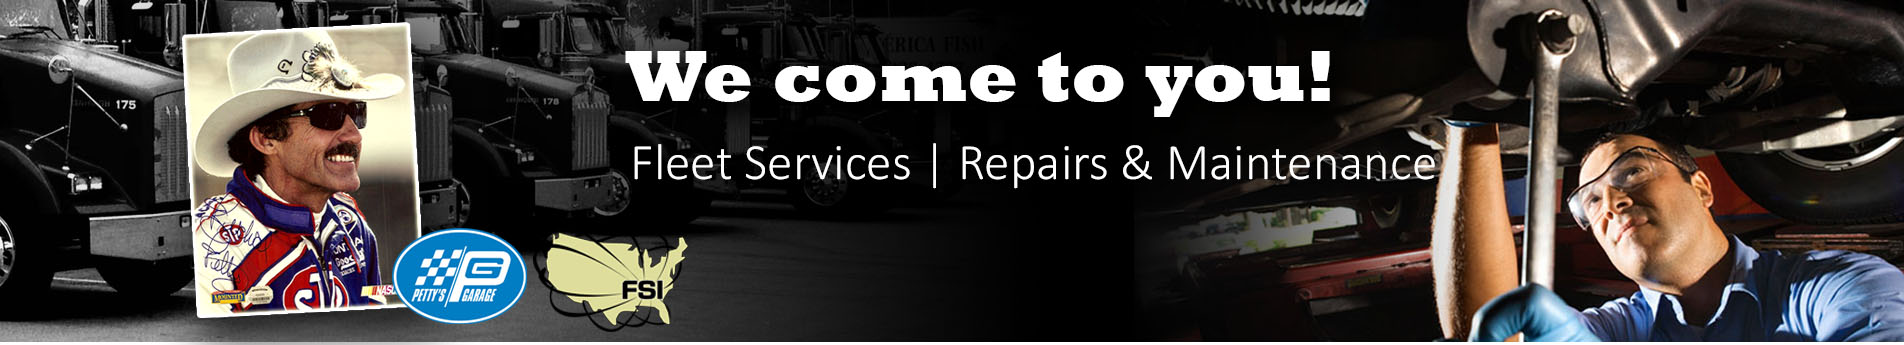 On-site Fleet Maintenance & Repairs